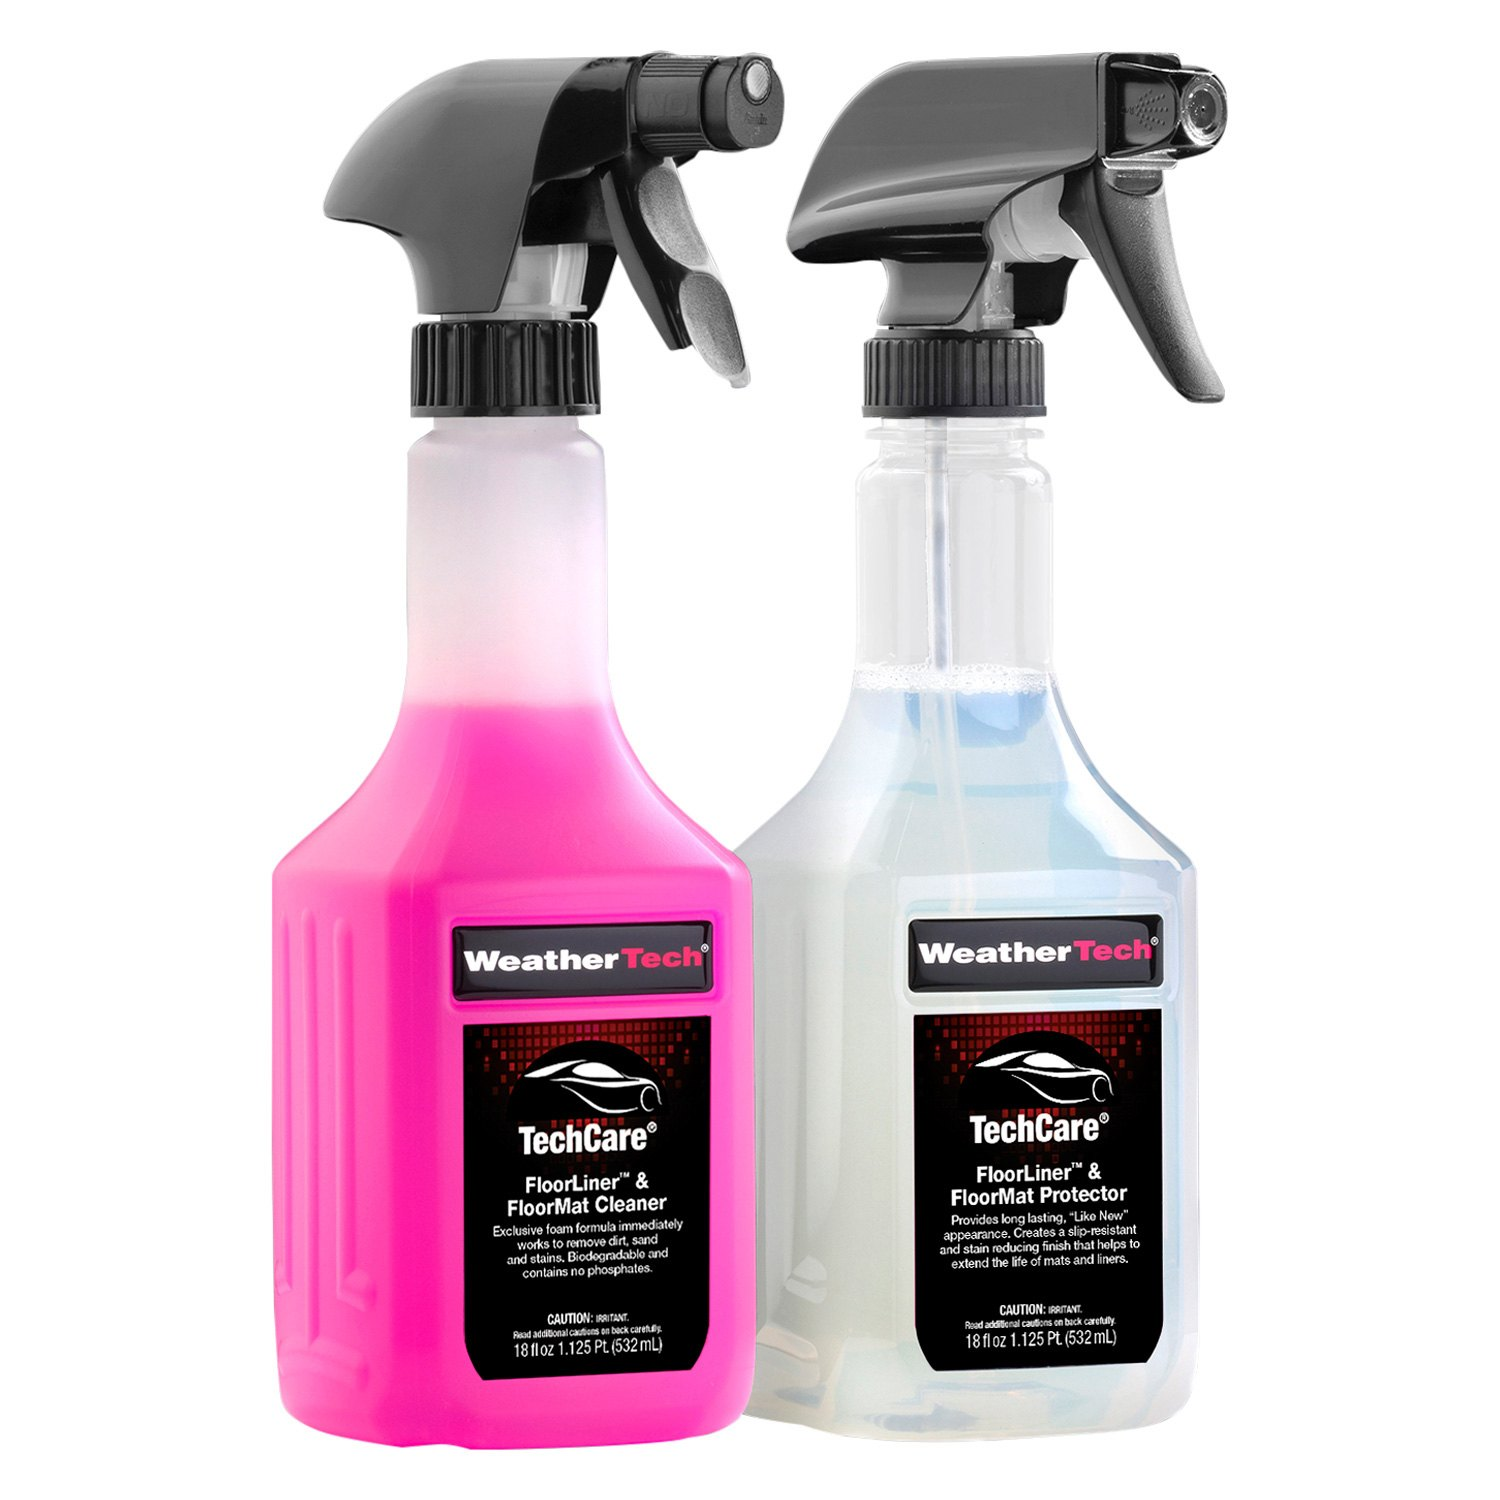 Weathertech Car Care Products Reviews